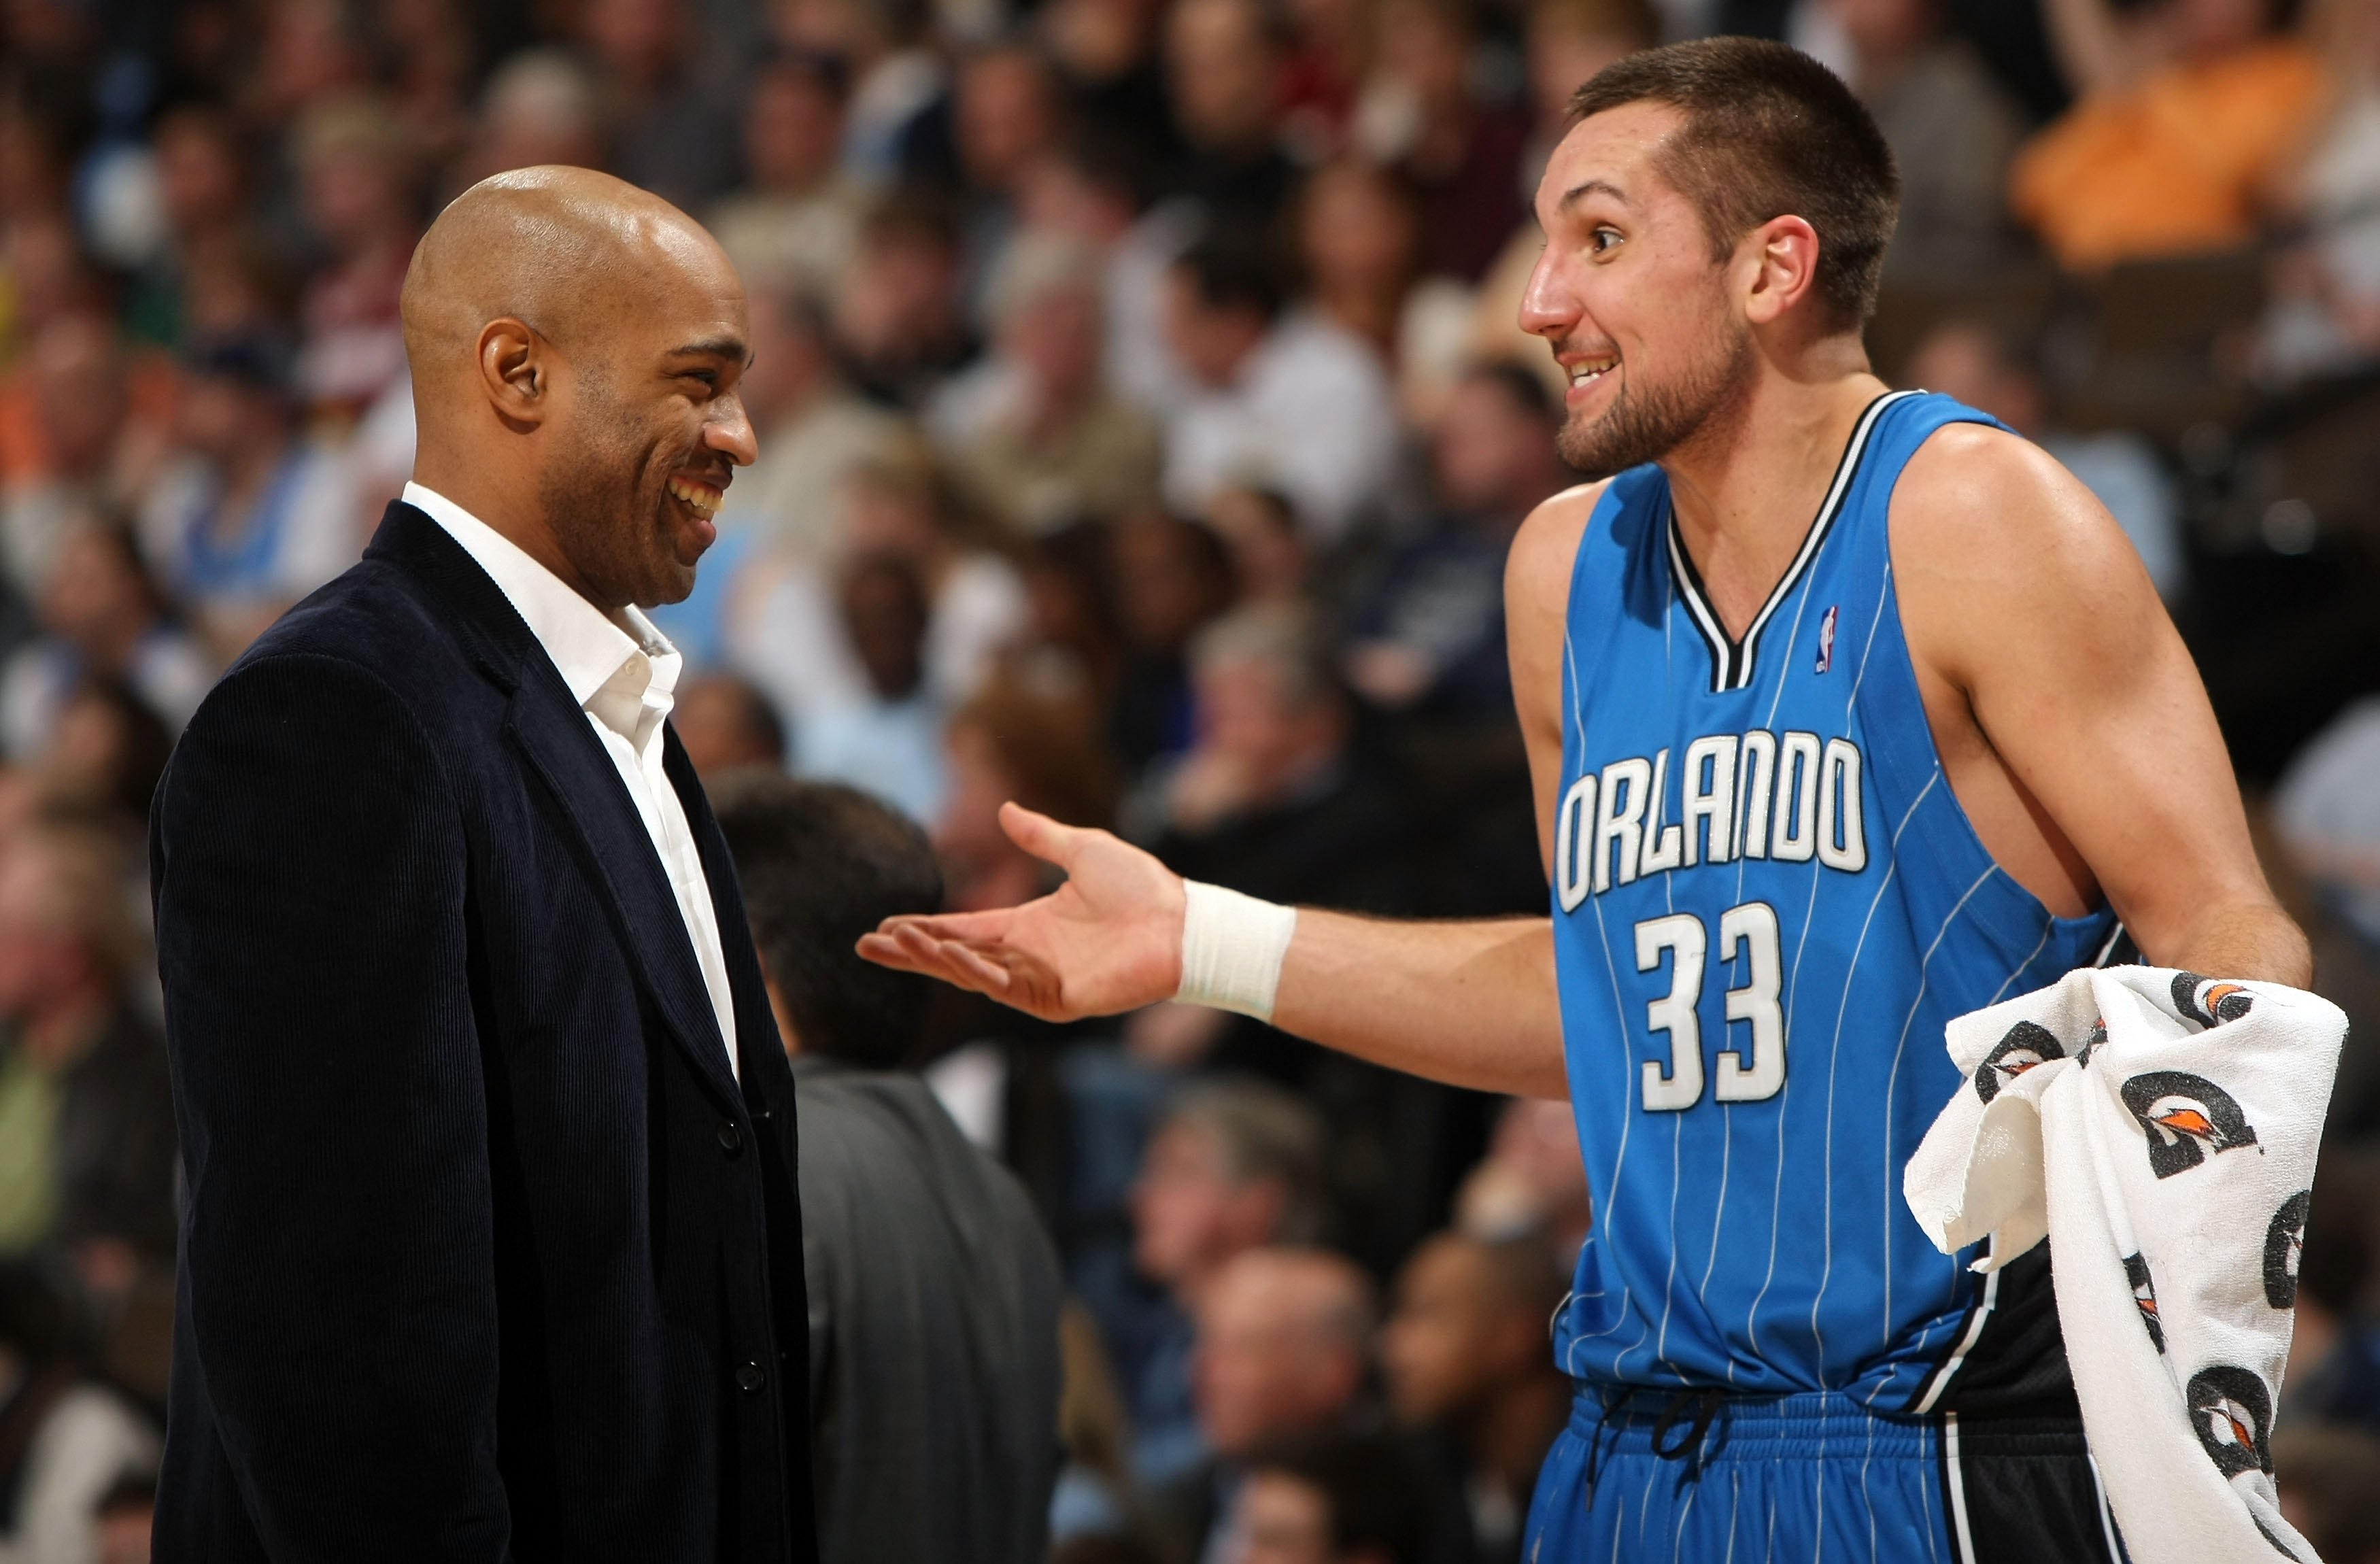 DENVER - JANUARY 13:  Ryan Anderson #33 of the Orlando Magic talks with an injured Vince Carter during a time out against the Denver Nuggets during NBA action at Pepsi Center on January 13, 2010 in Denver, Colorado. The Nuggets defeated the Magic 115-97.